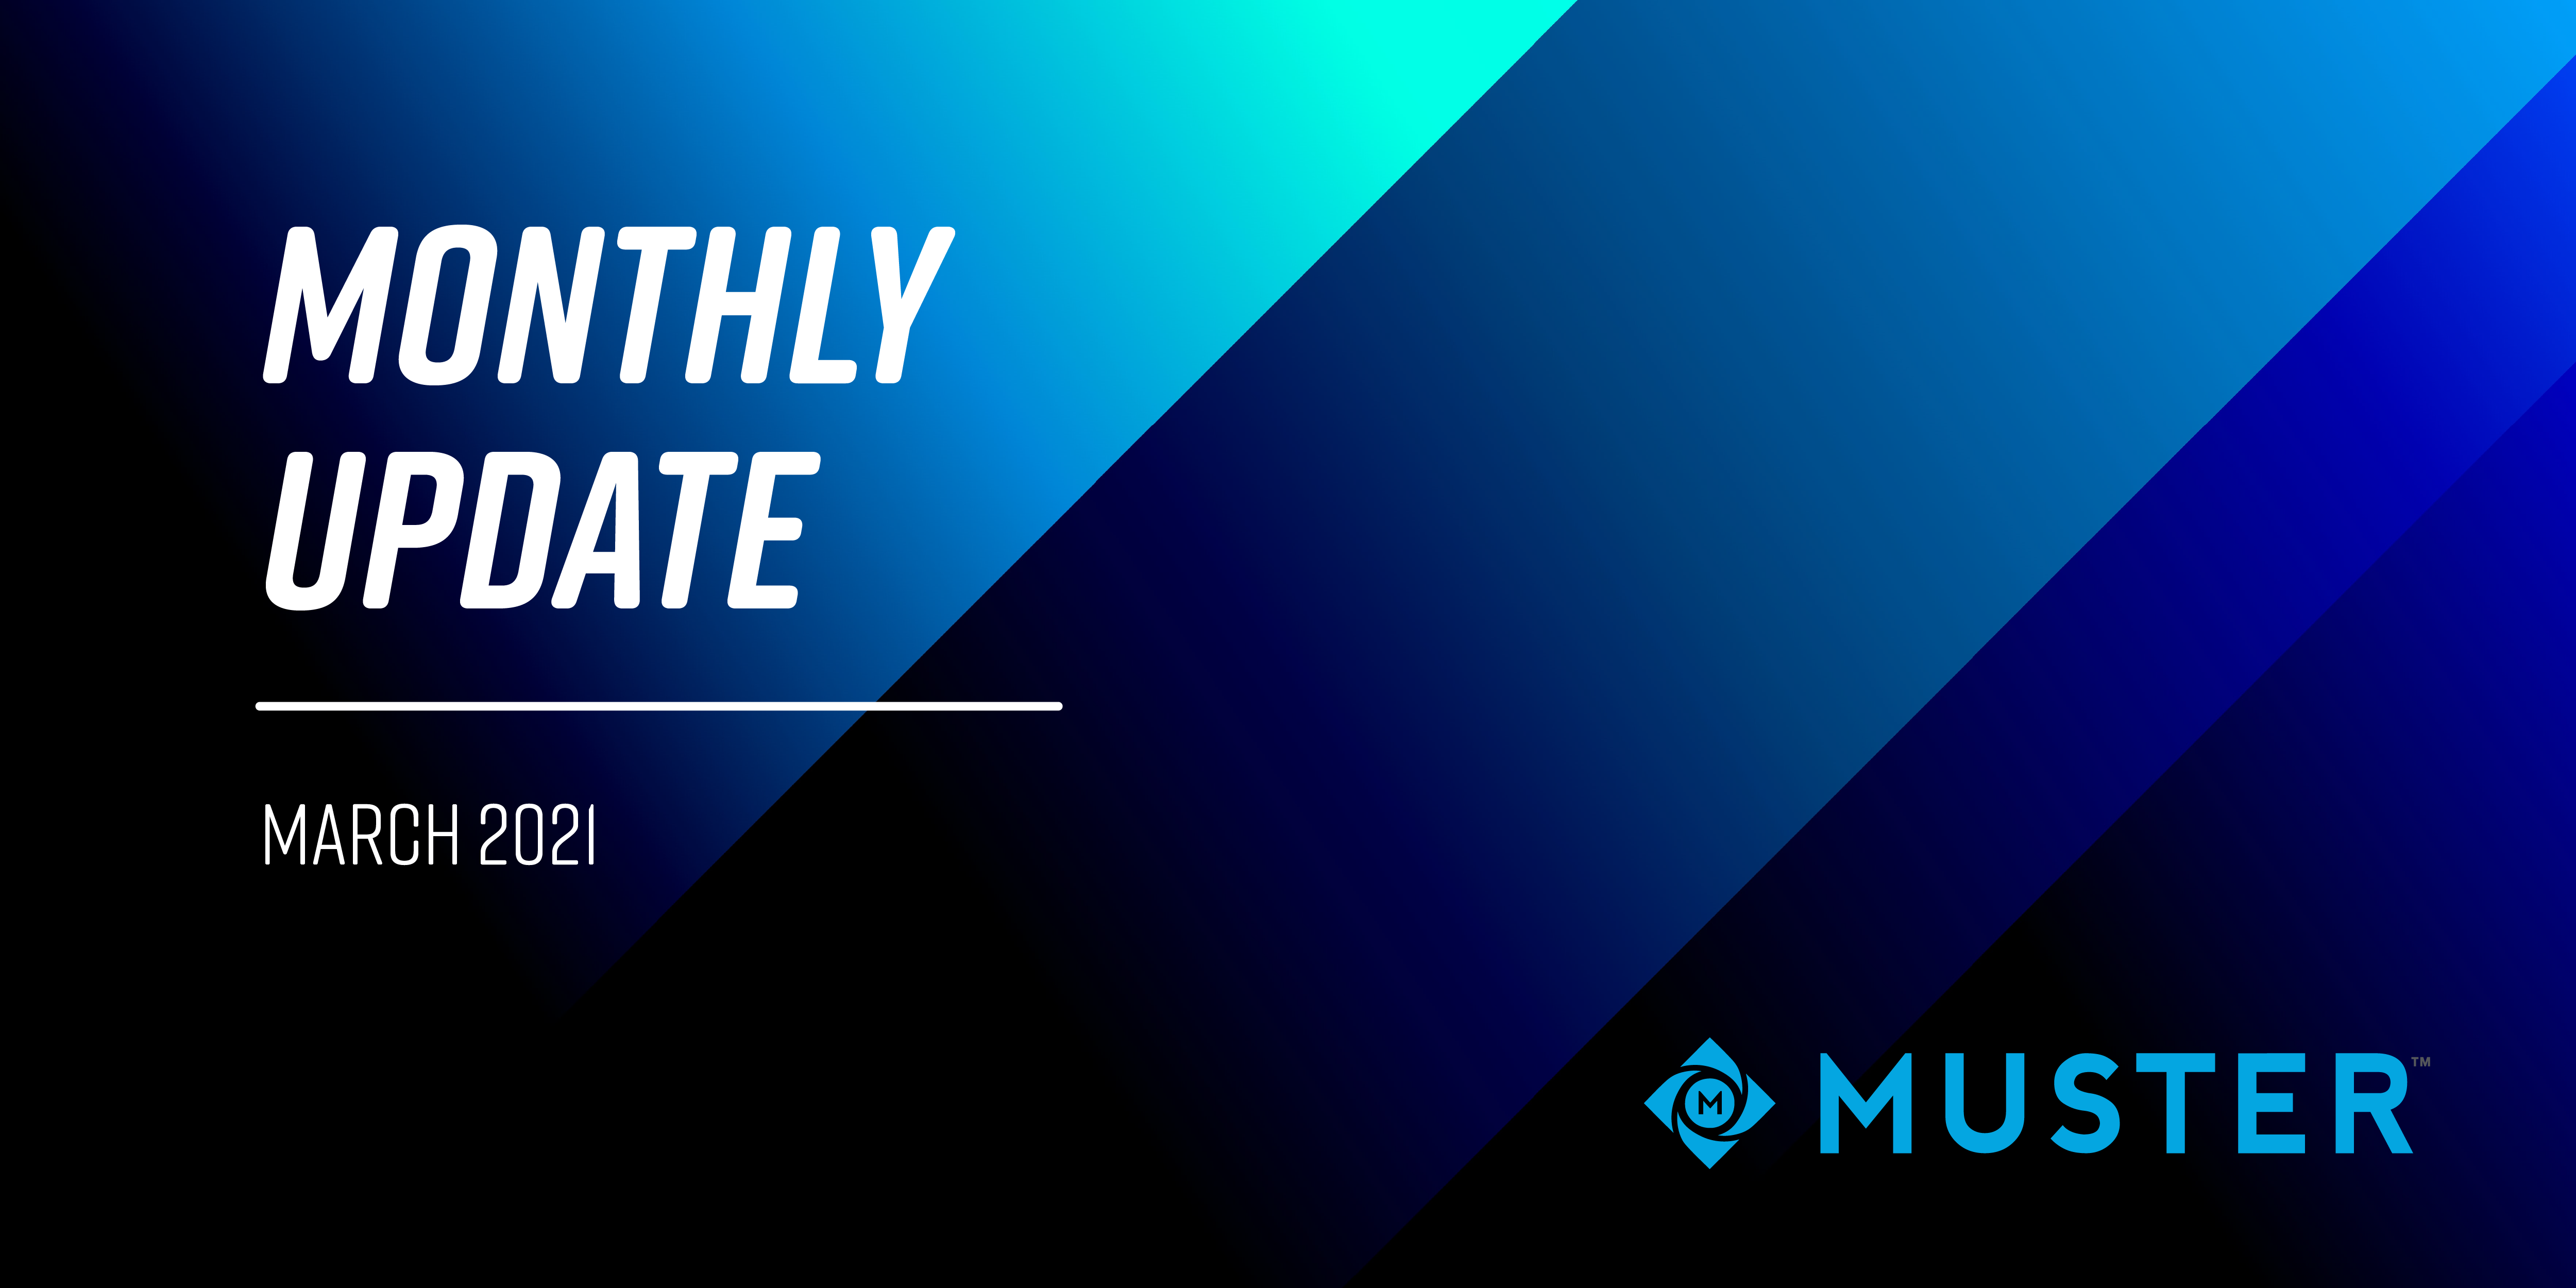 muster monthly update march